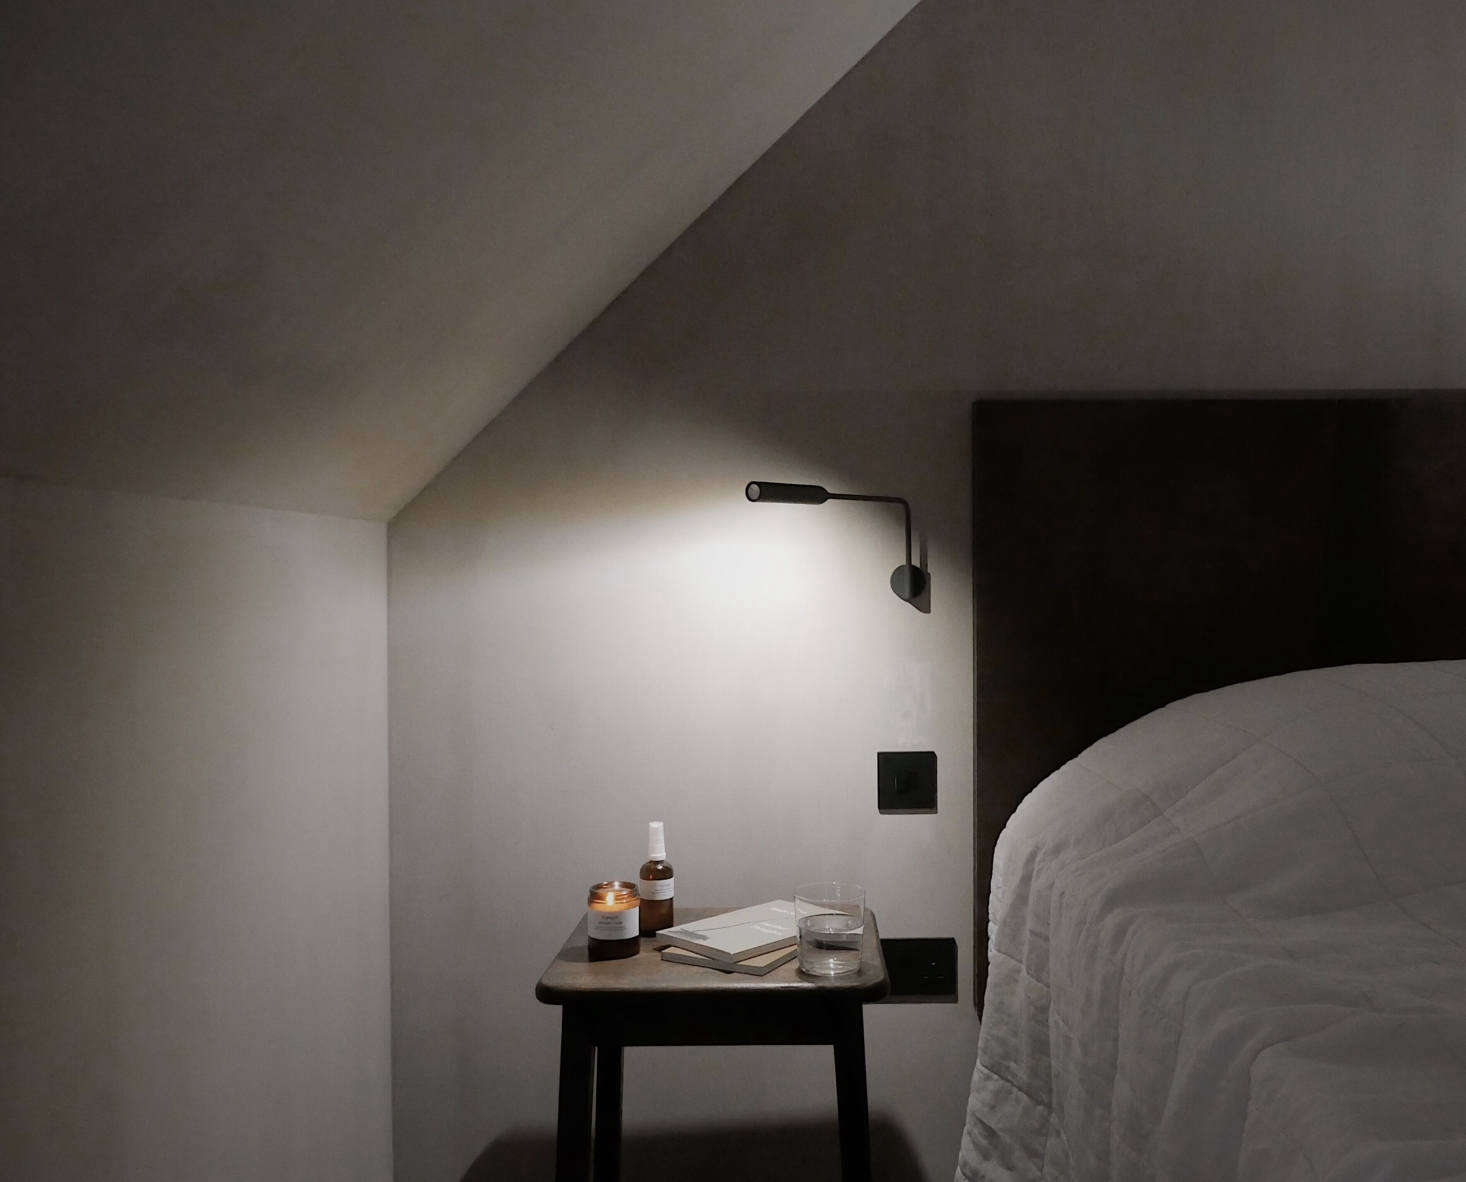 """The beds have custom leather headboards and bedsideFlo LED Wall Lights by Foster & Partners. On the side tables: reading materials as well as naturally scented candles and """"comfort mists"""" by UK company Honest."""